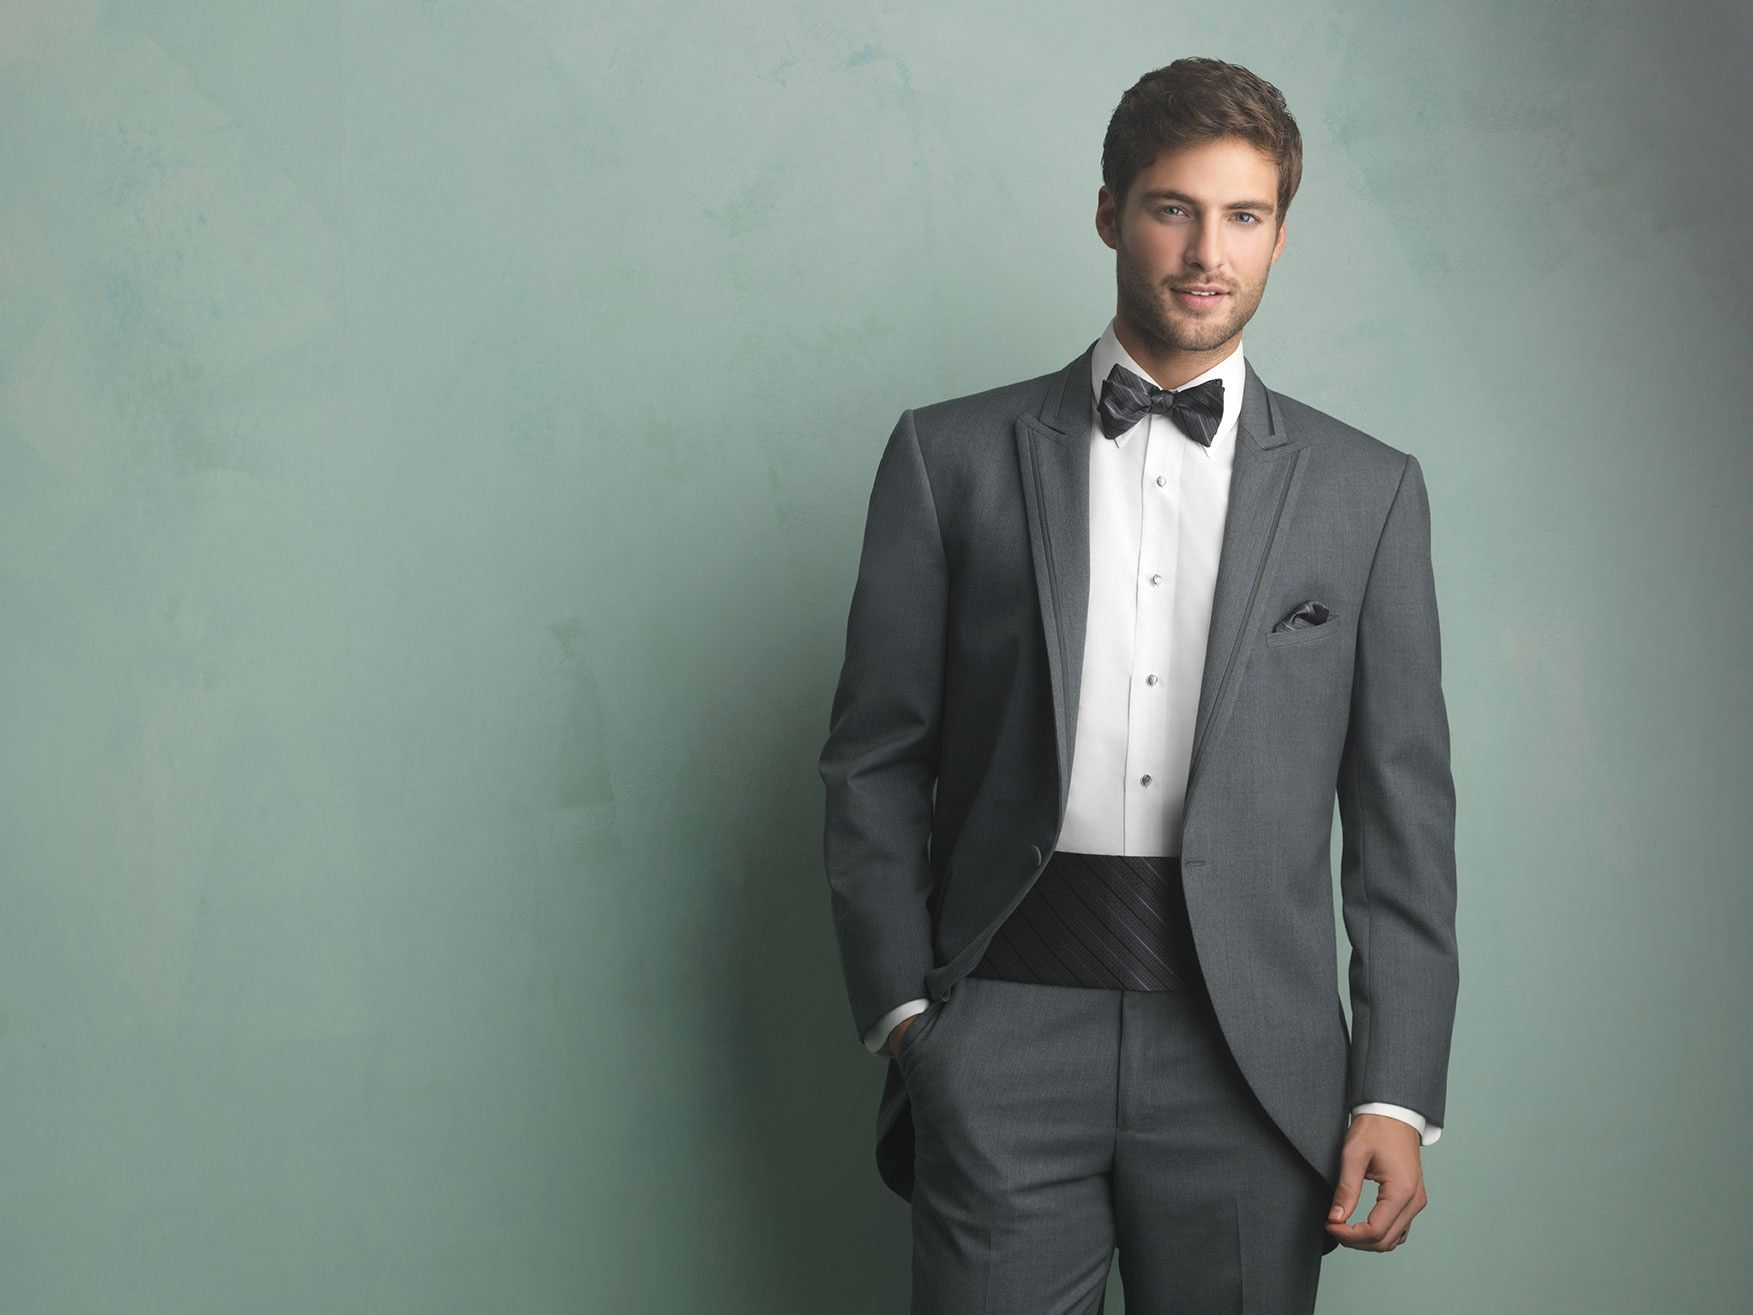 I love the dark grey | MODELS MENS ACTORS MOVIES SUITS TUXEDOS ...